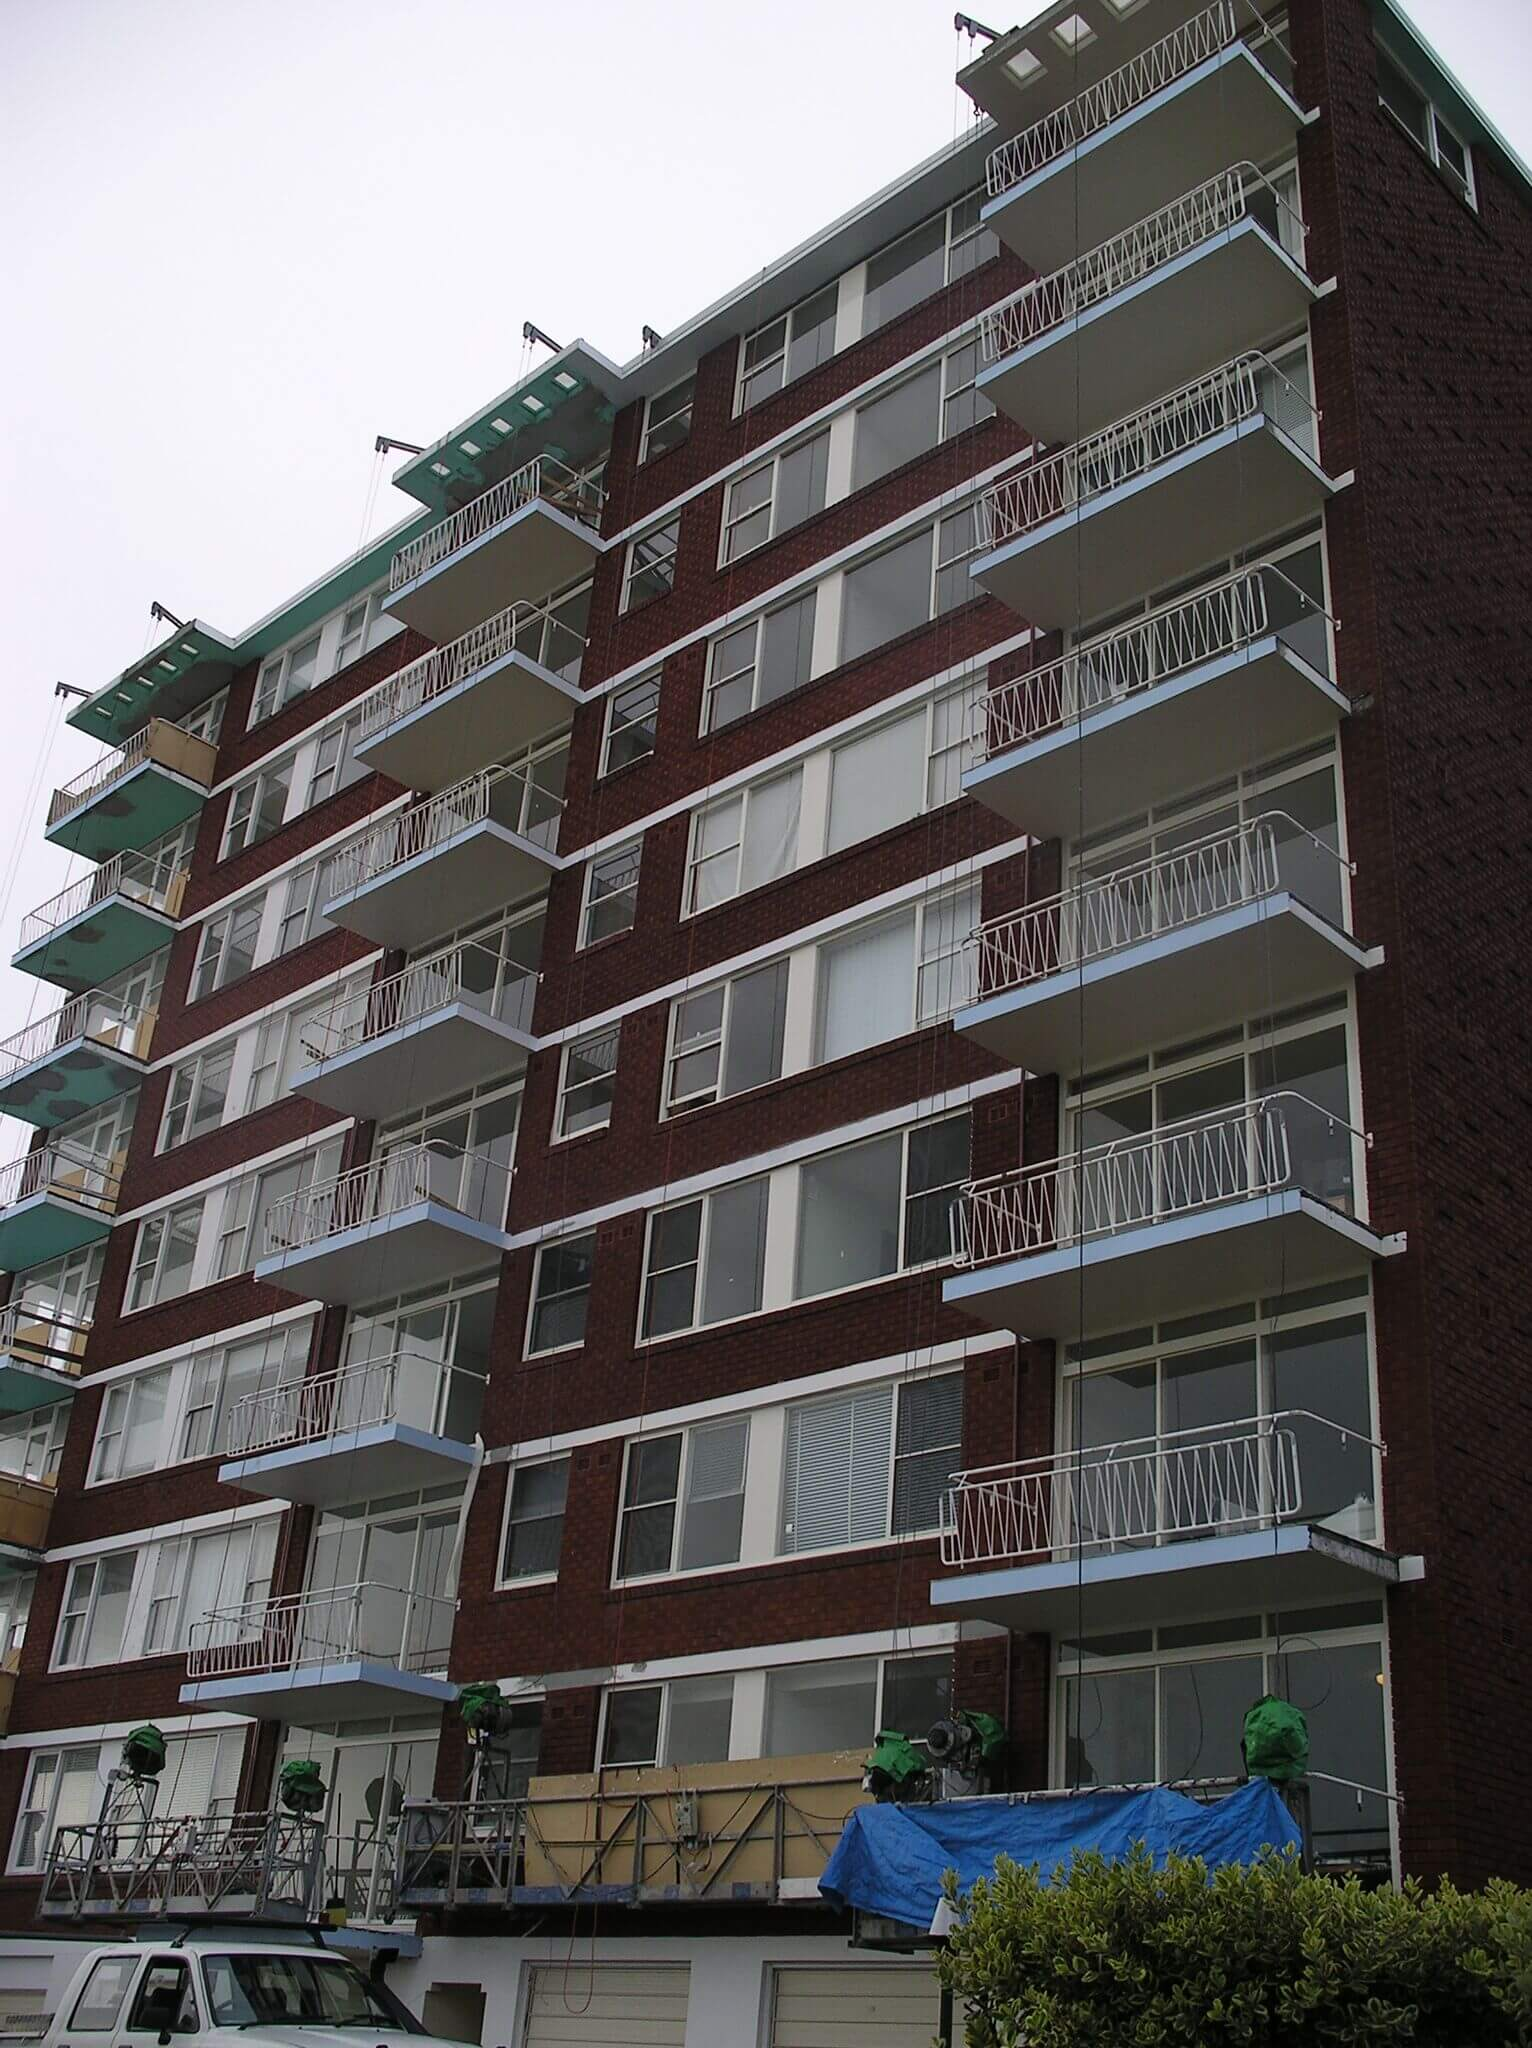 Windows And Balconies Of A Building - Structural Building Solutions - Remedial Building Services